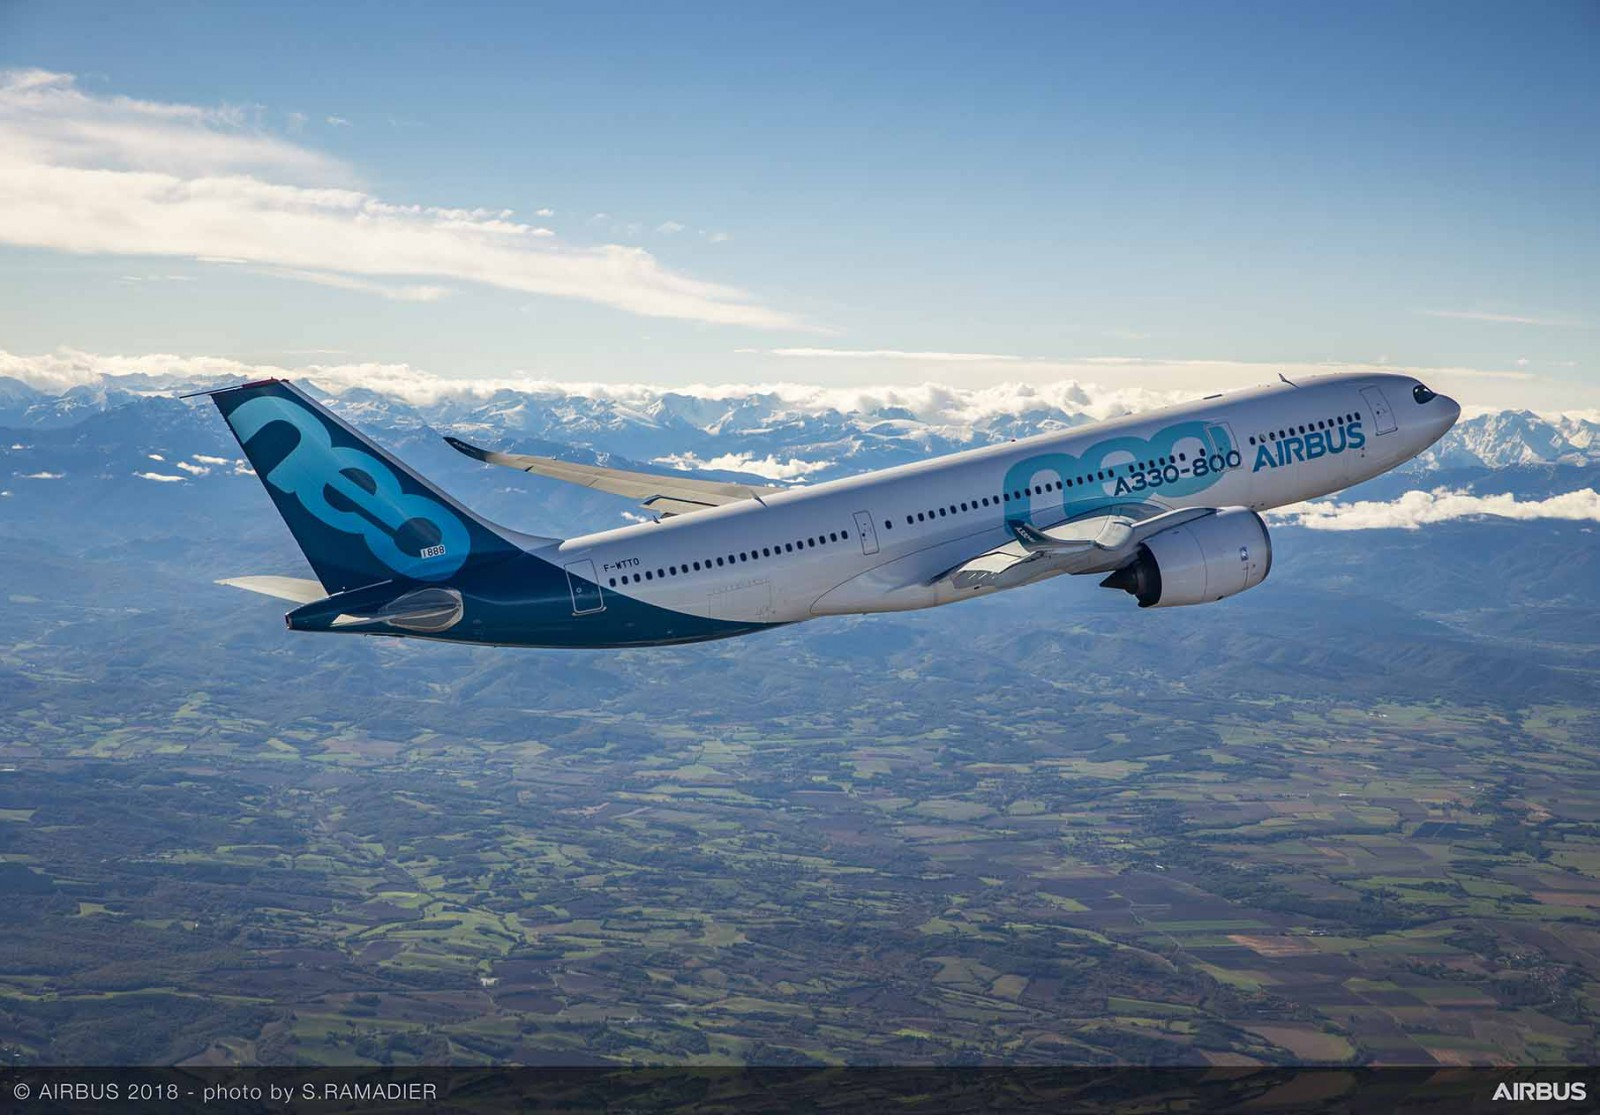 Airbus A330-800 neo makes first flight - Airline Ratings